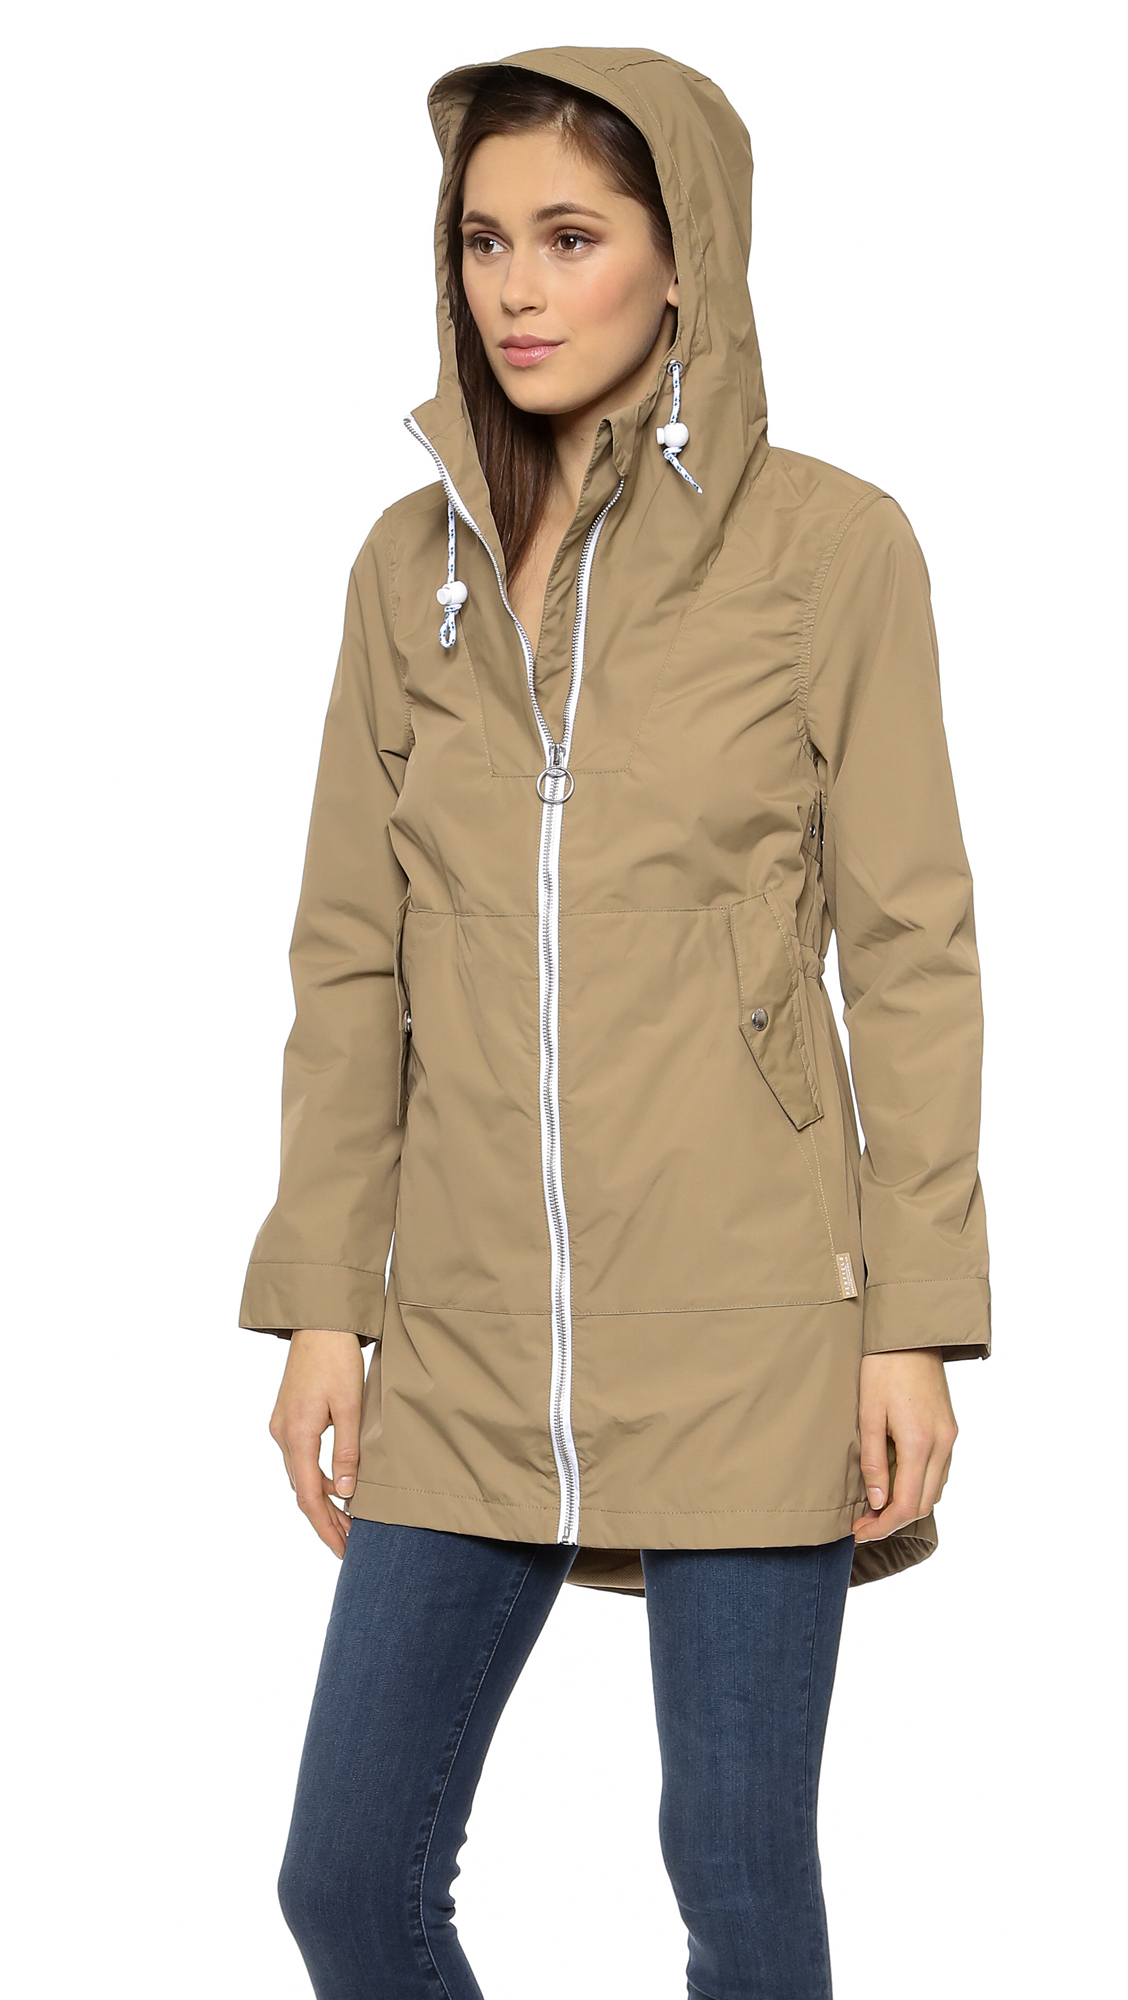 Penfield Gibson Rain Jacket - Gold in Natural | Lyst